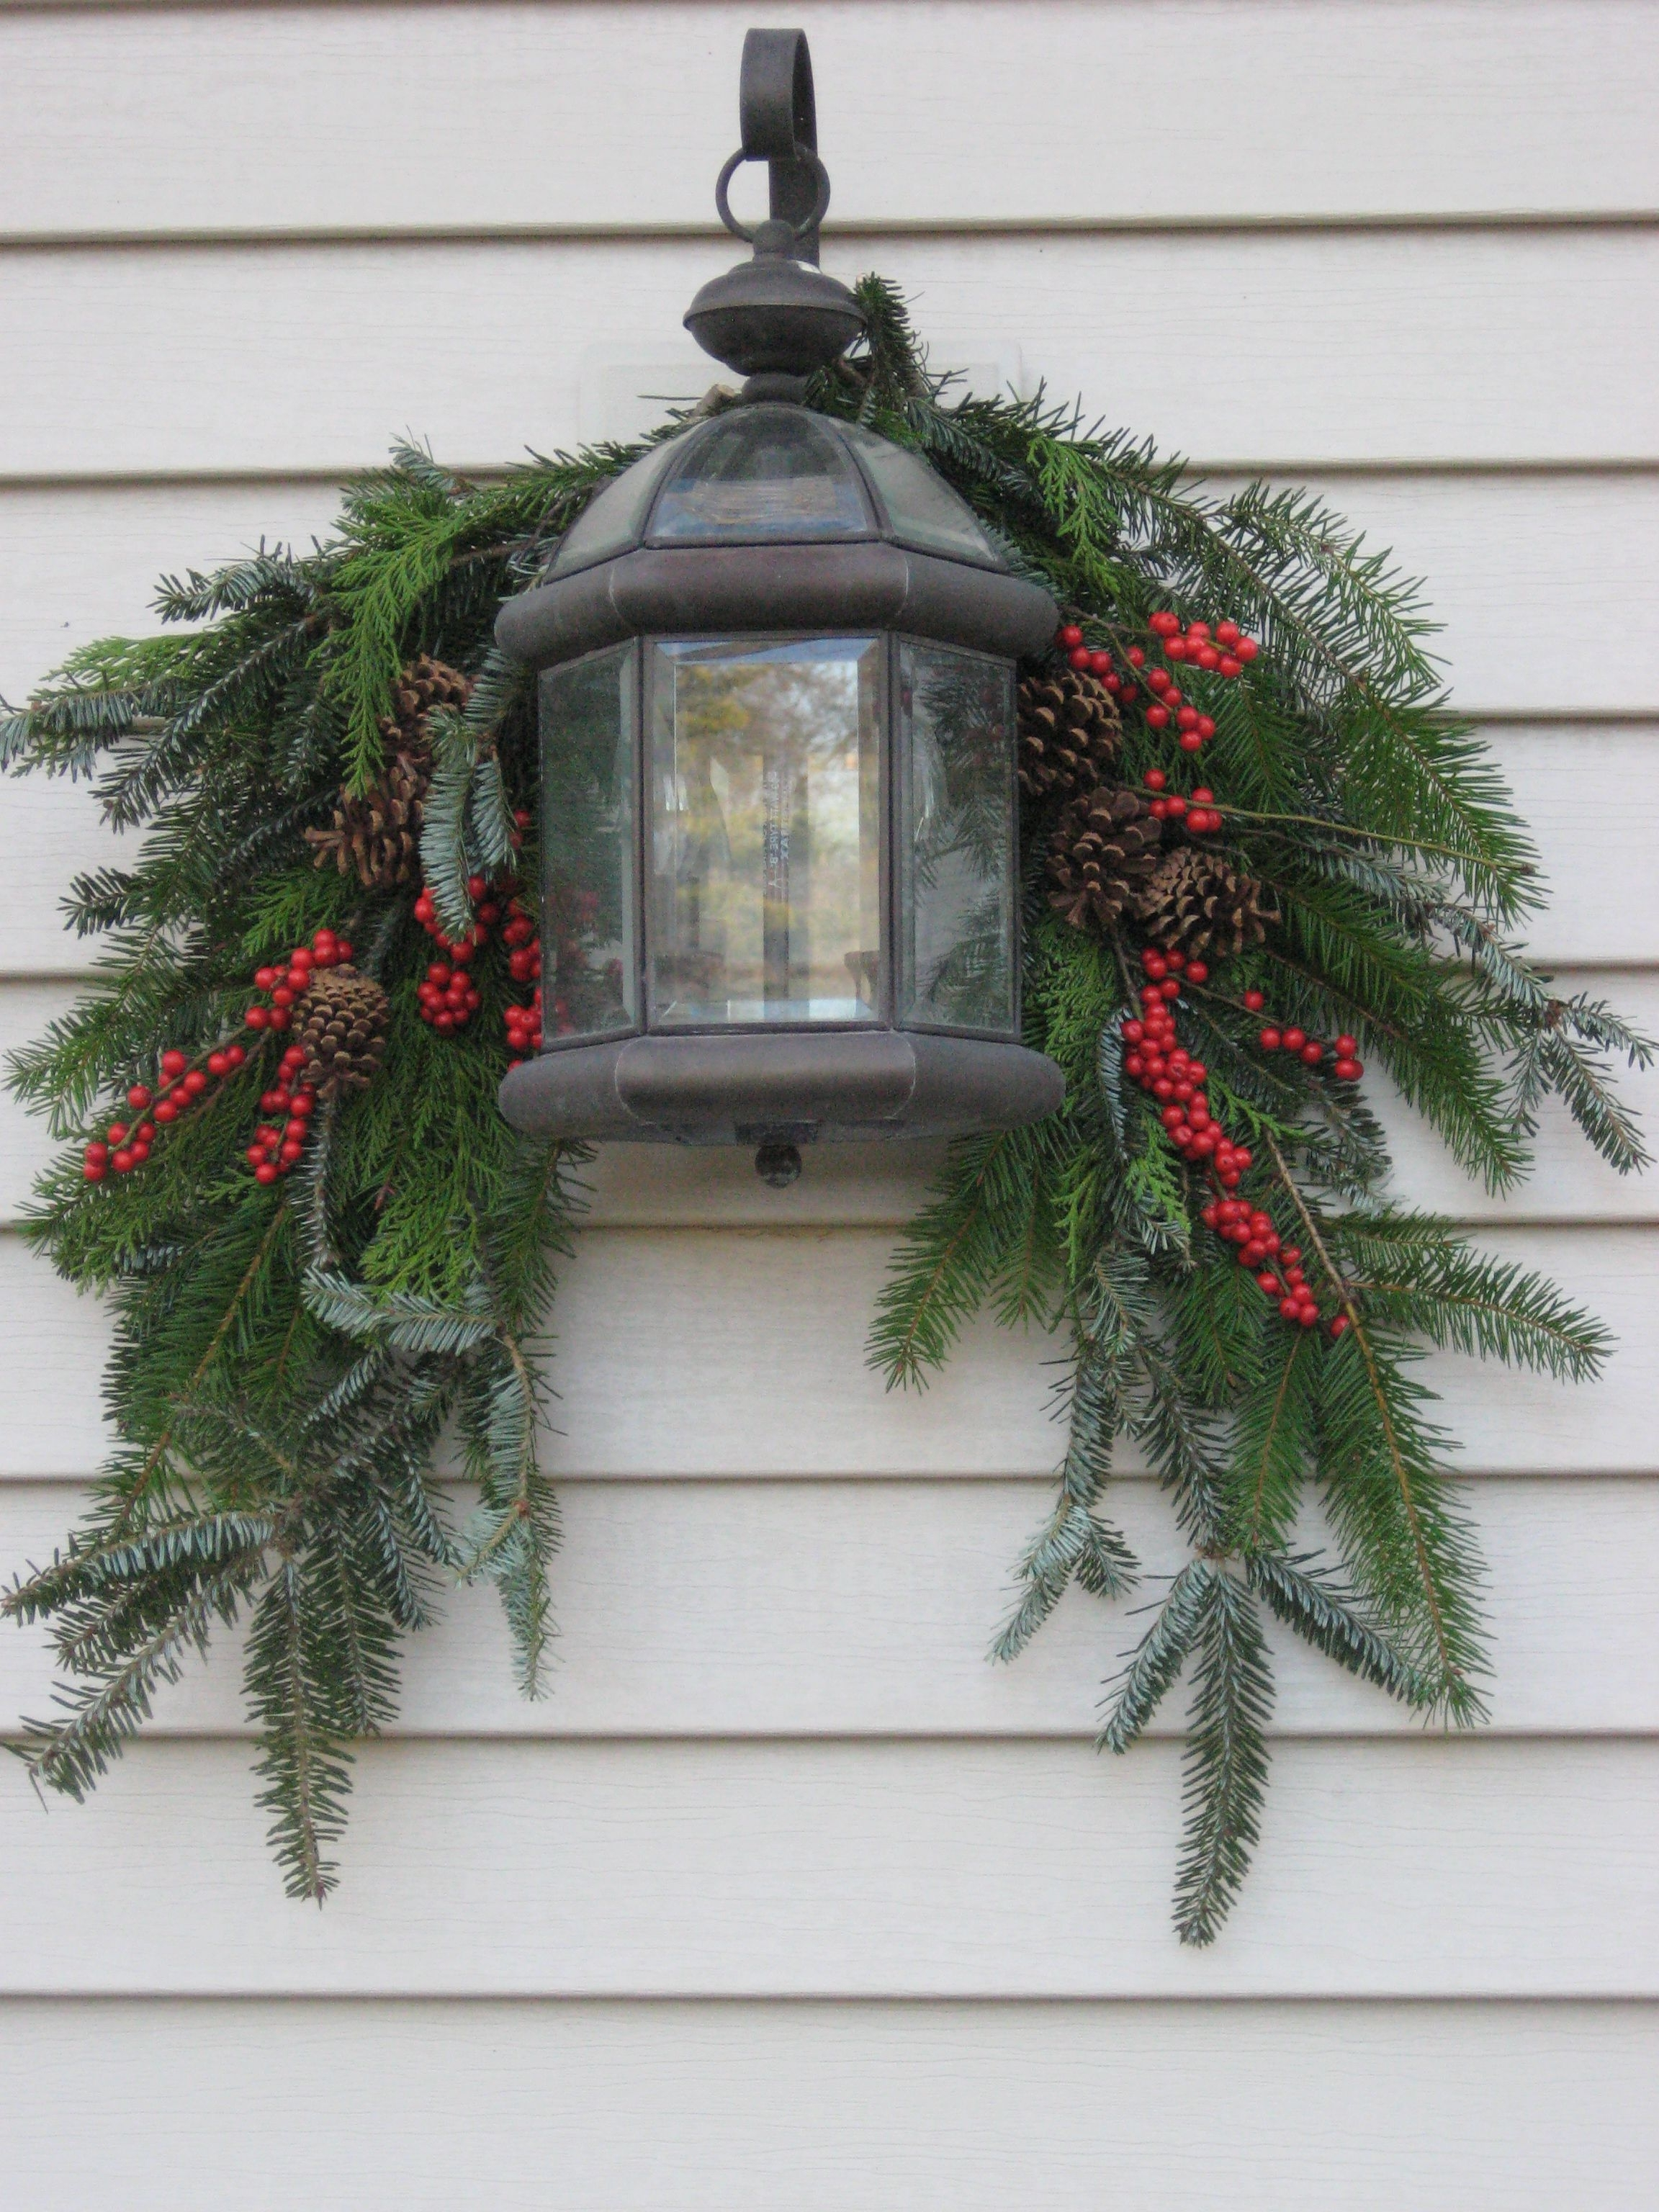 Trendy A Guide To Beautiful (And Not Tacky) Outdoor Holiday Decor In 2018 For Outdoor Xmas Lanterns (View 12 of 20)